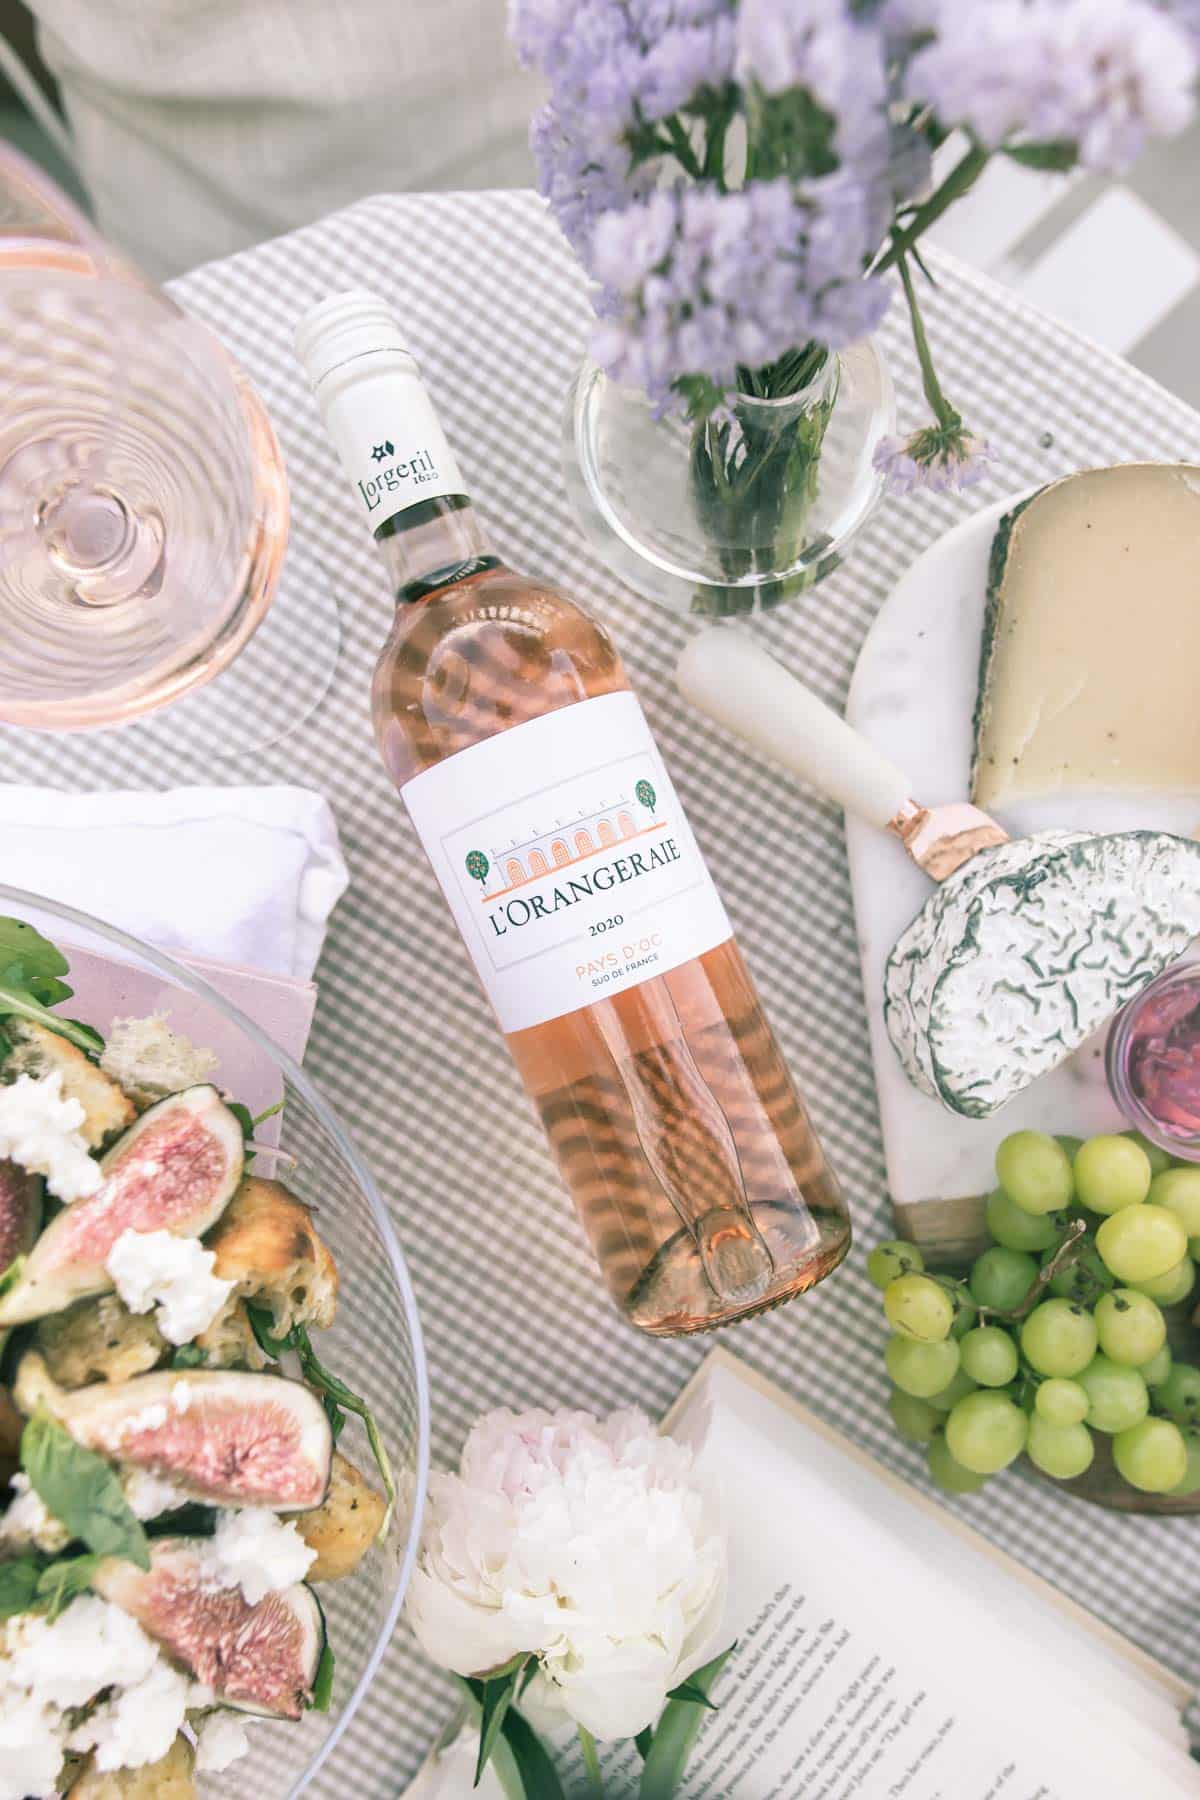 Bottle of L'orangeraie Rose surrounded by cheeseboard, flowers and salad.